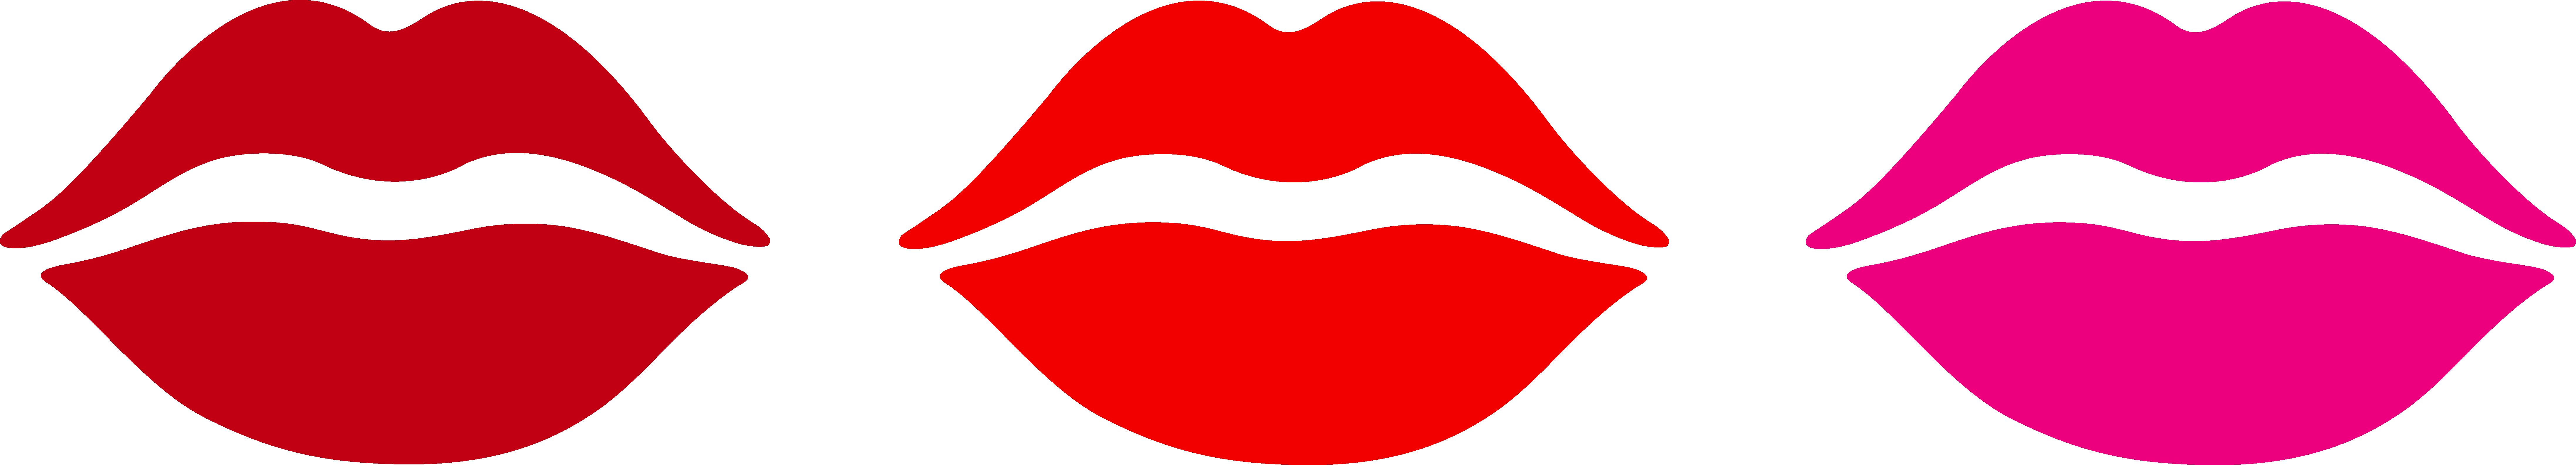 Free Kissing Lips Clipart, Download Free Clip Art, Free Clip.